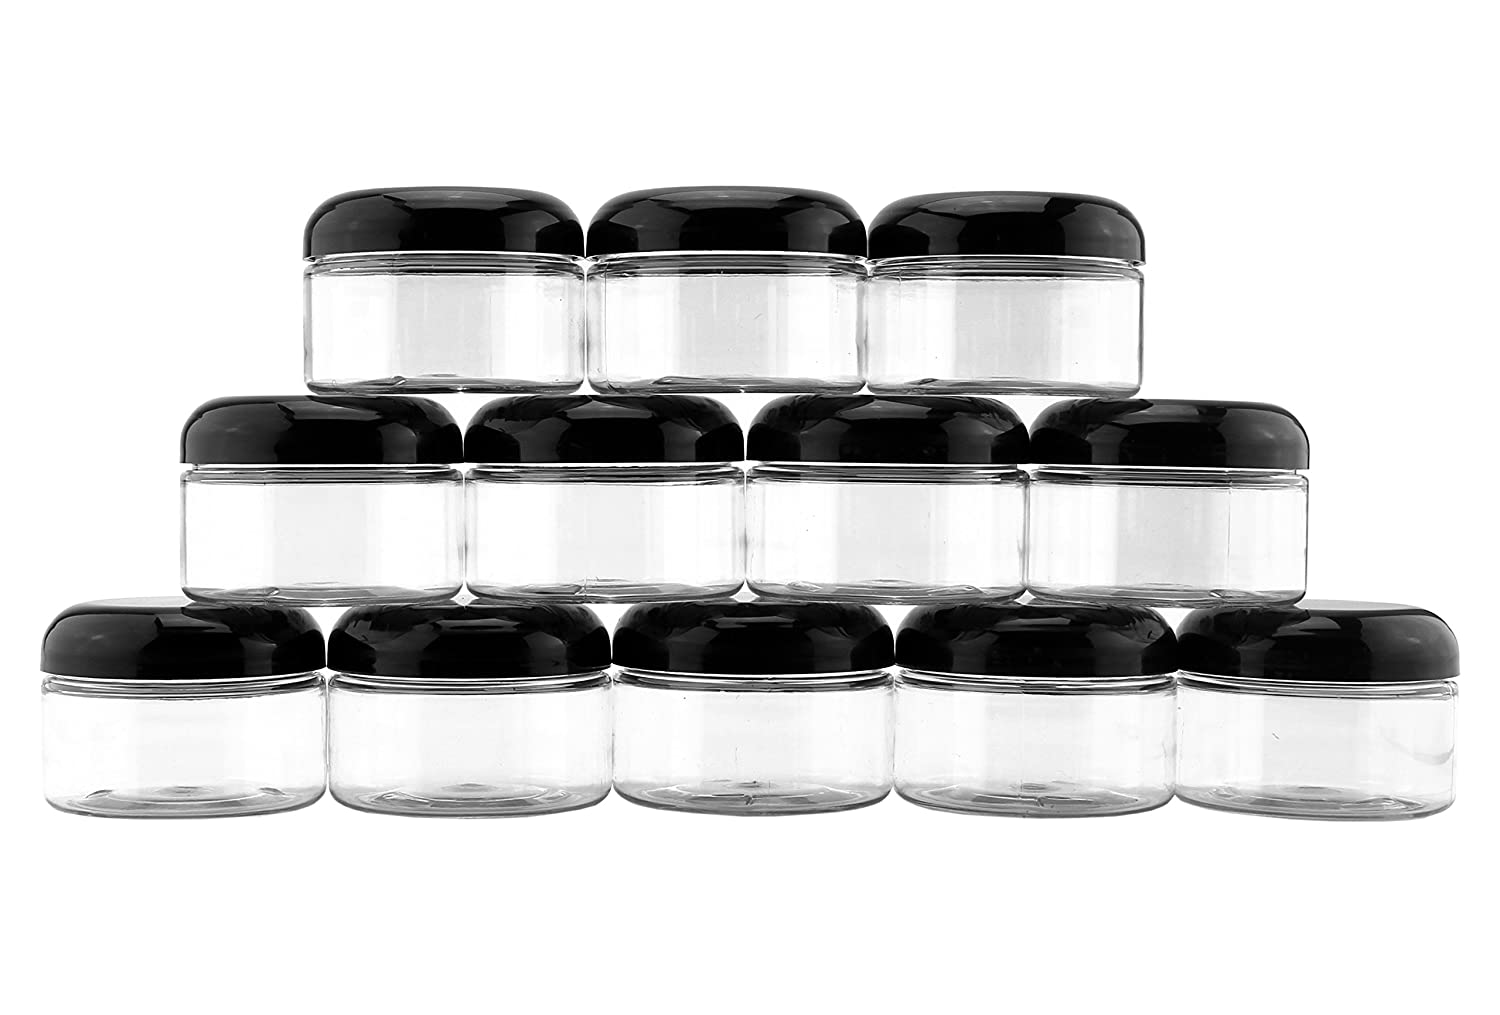 4-Ounce Clear Plastic Jars 12-Pack Jars w Black Domed Lids for Cosmetics, Kitchen Spices, Crafts Office